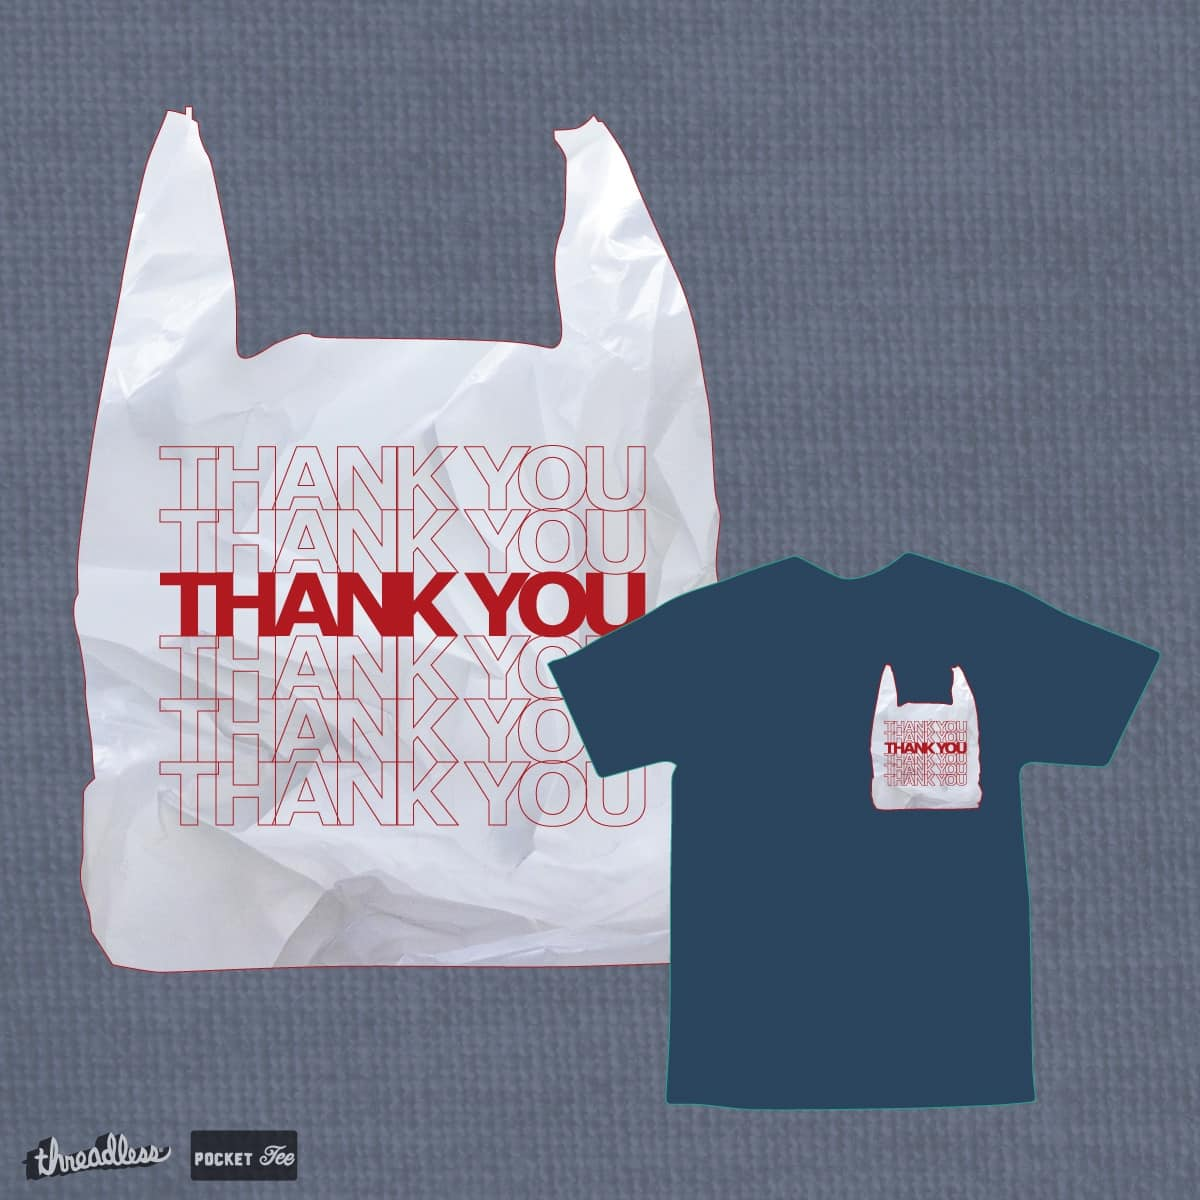 THANKS by PhilandKonyin on Threadless